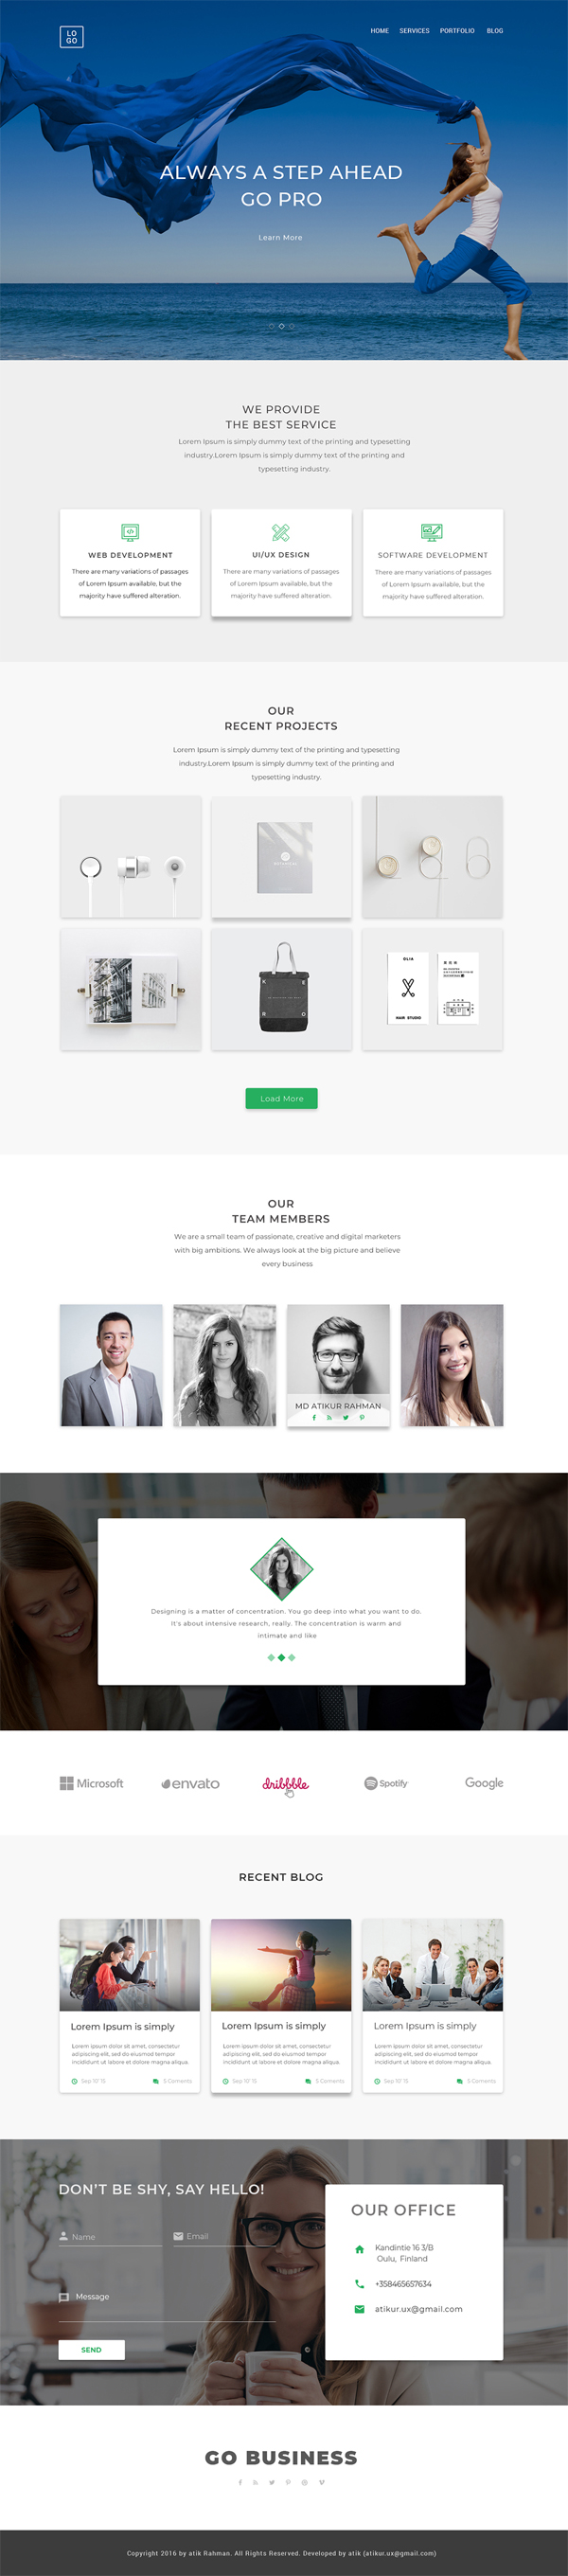 Free Web Design Template - Step Ahead